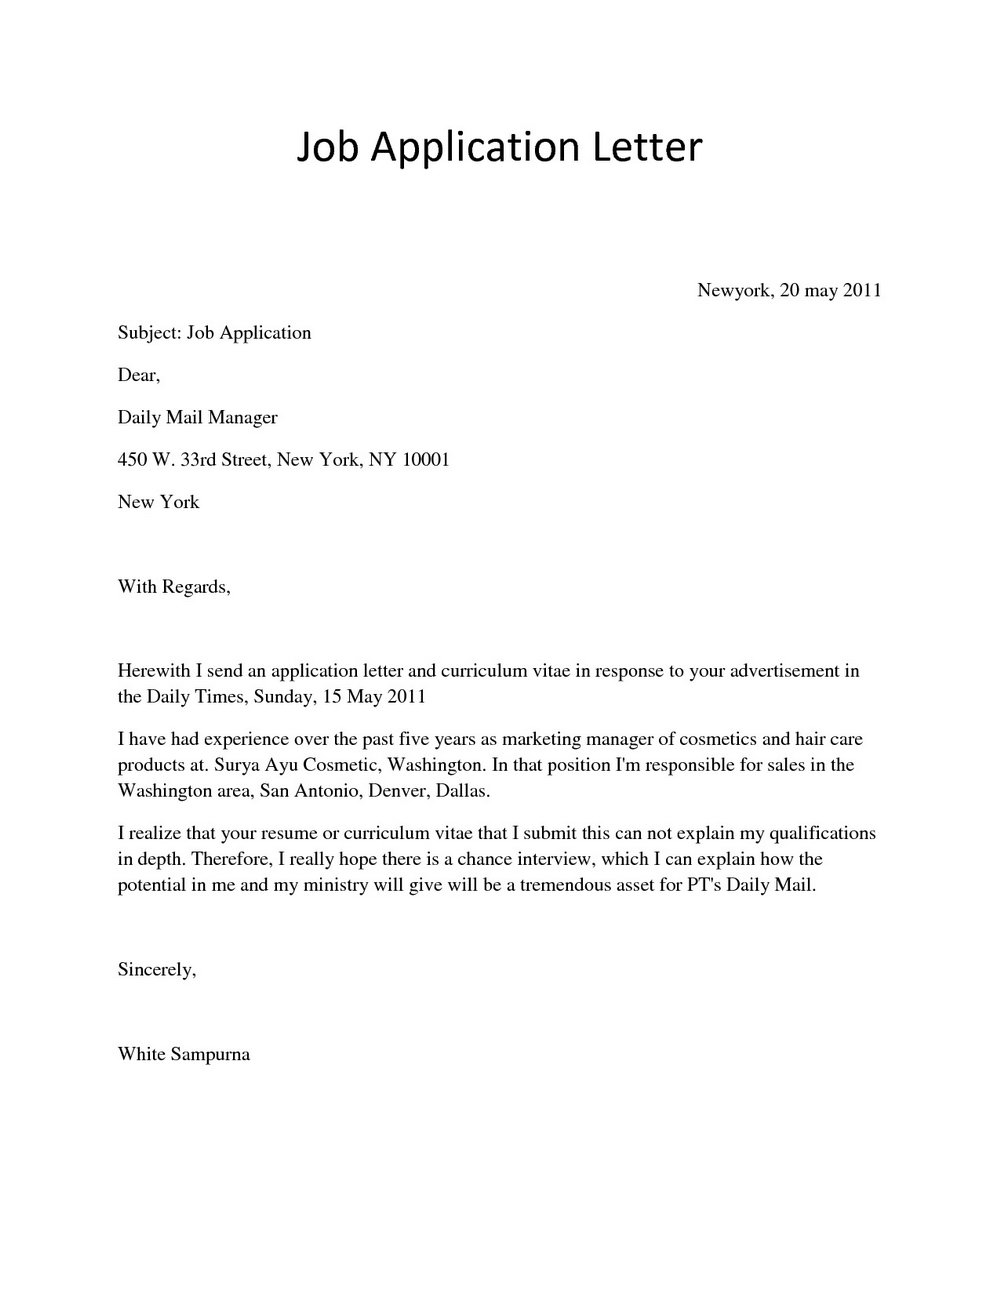 Sample Application Letter For Job Vacancy Pdf